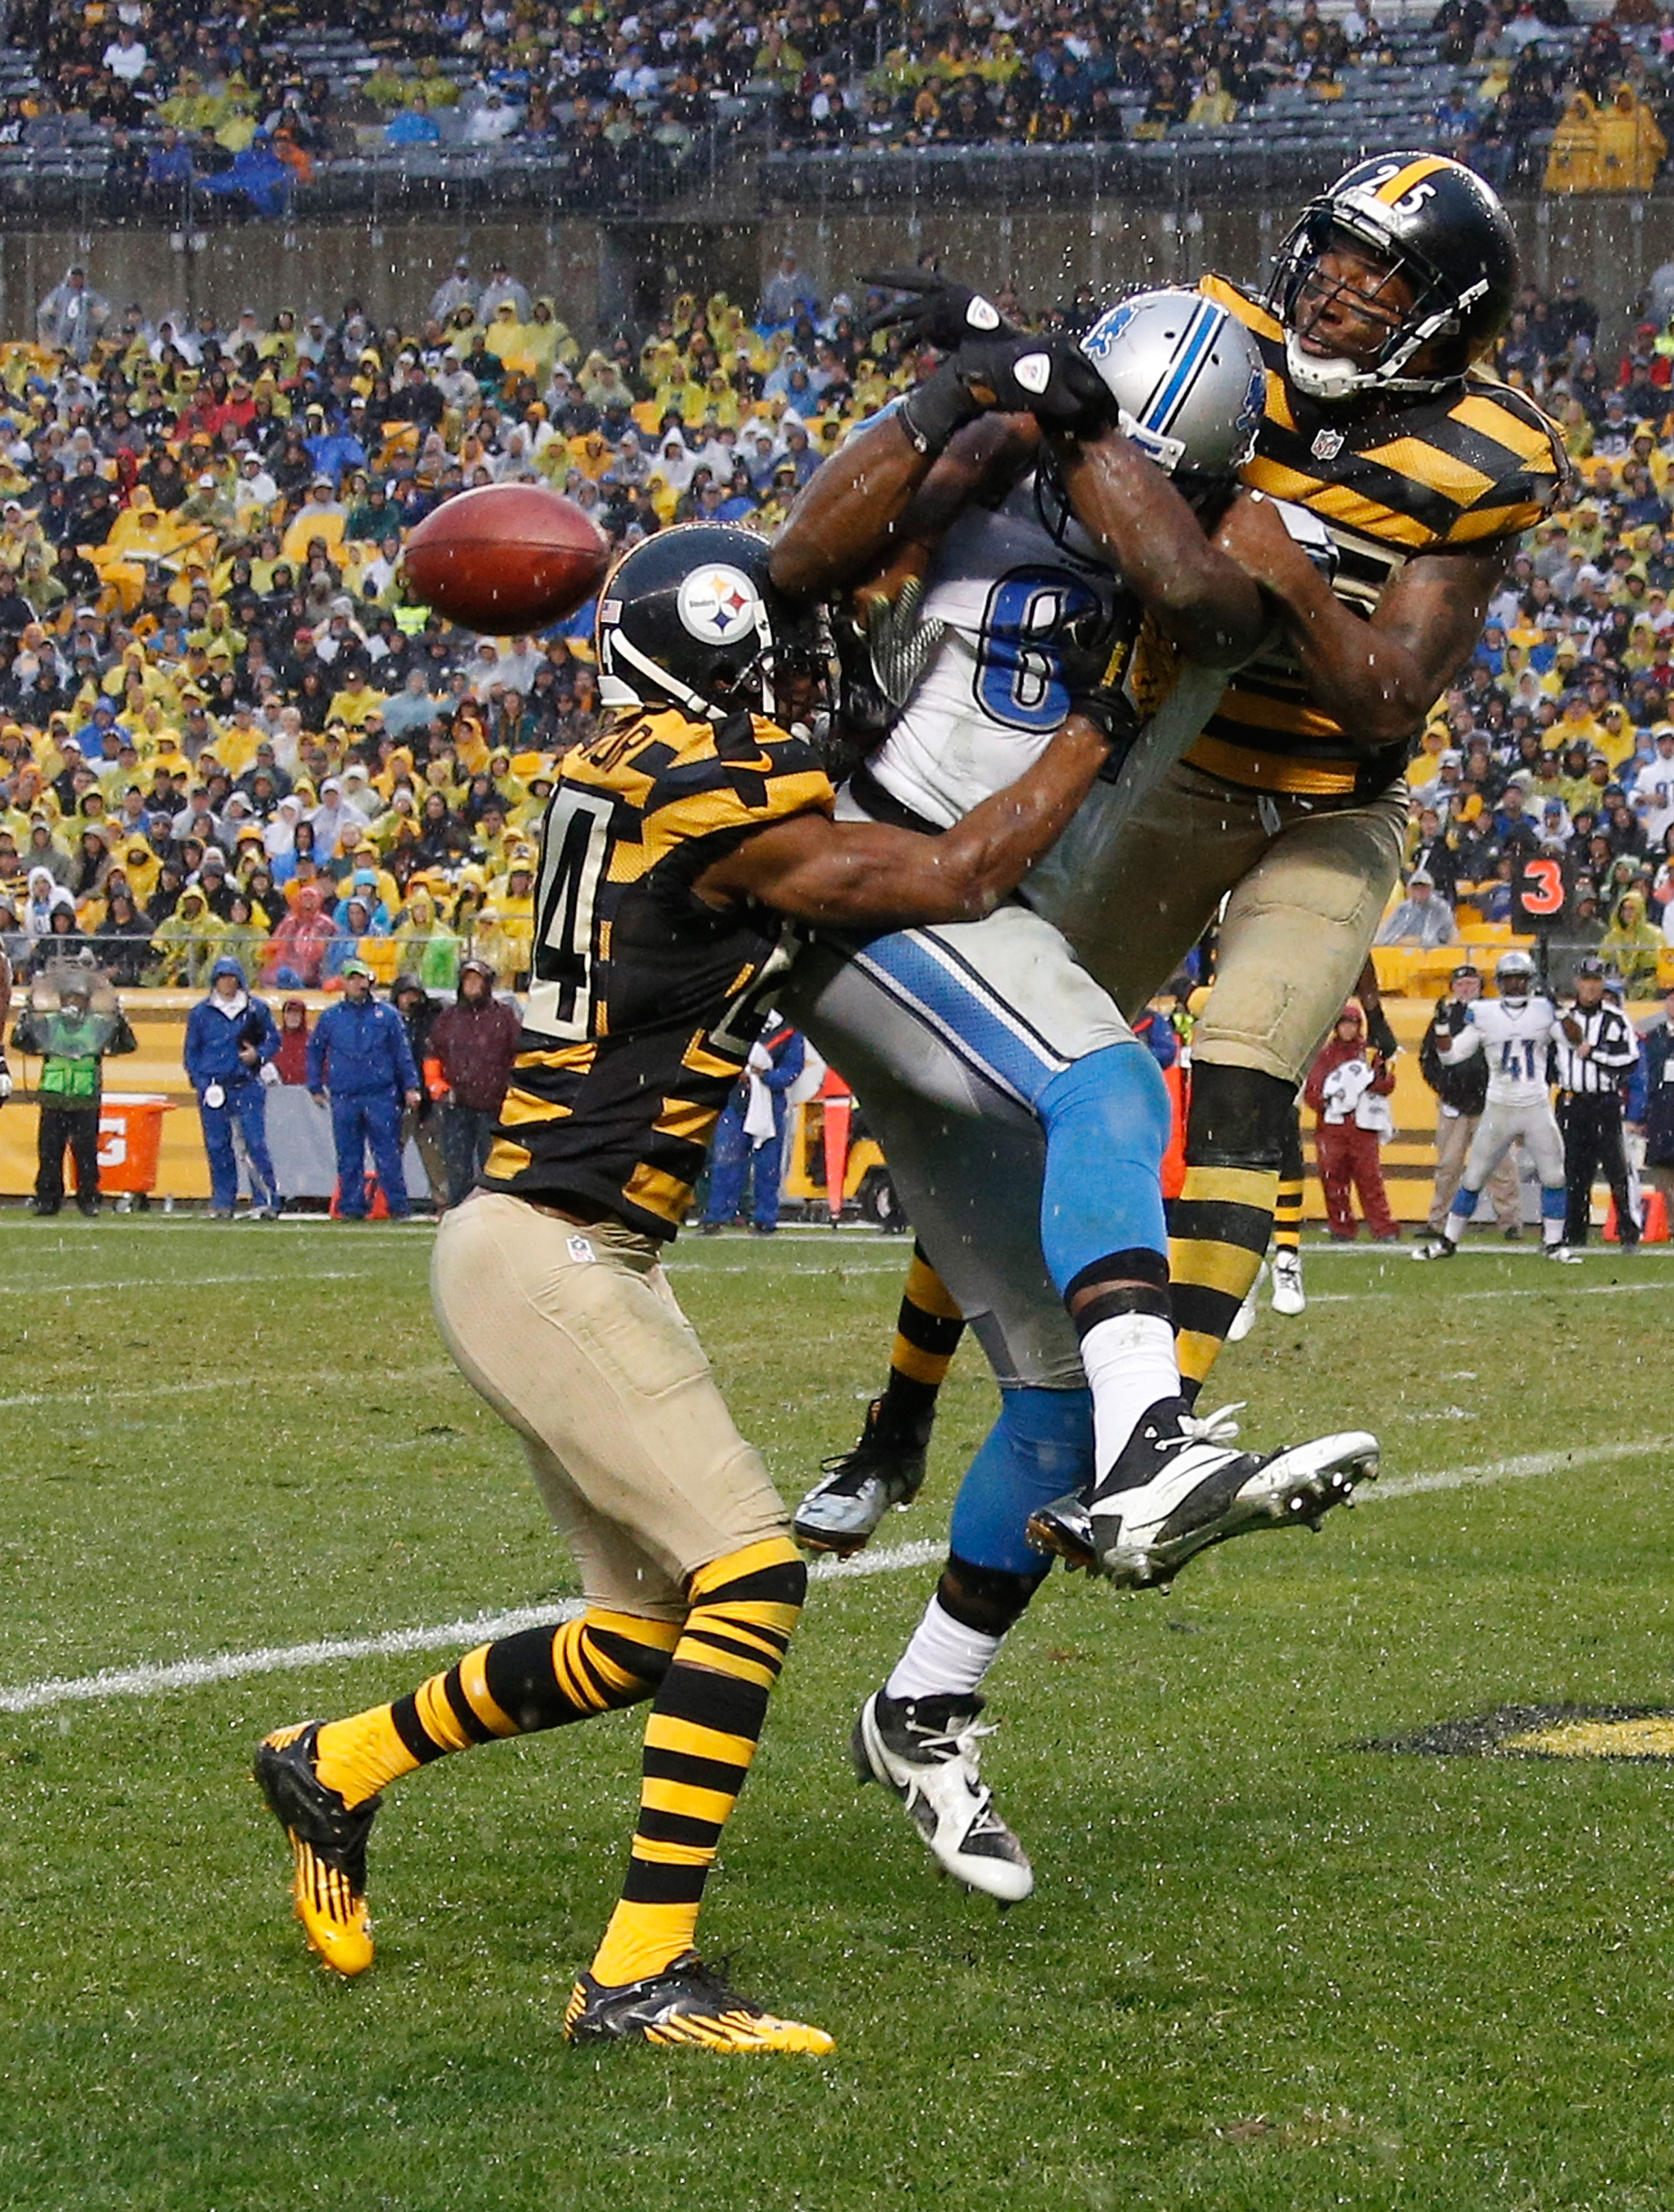 """Ryan Clark, Ike Taylor double team and dominate """"Megatron"""""""